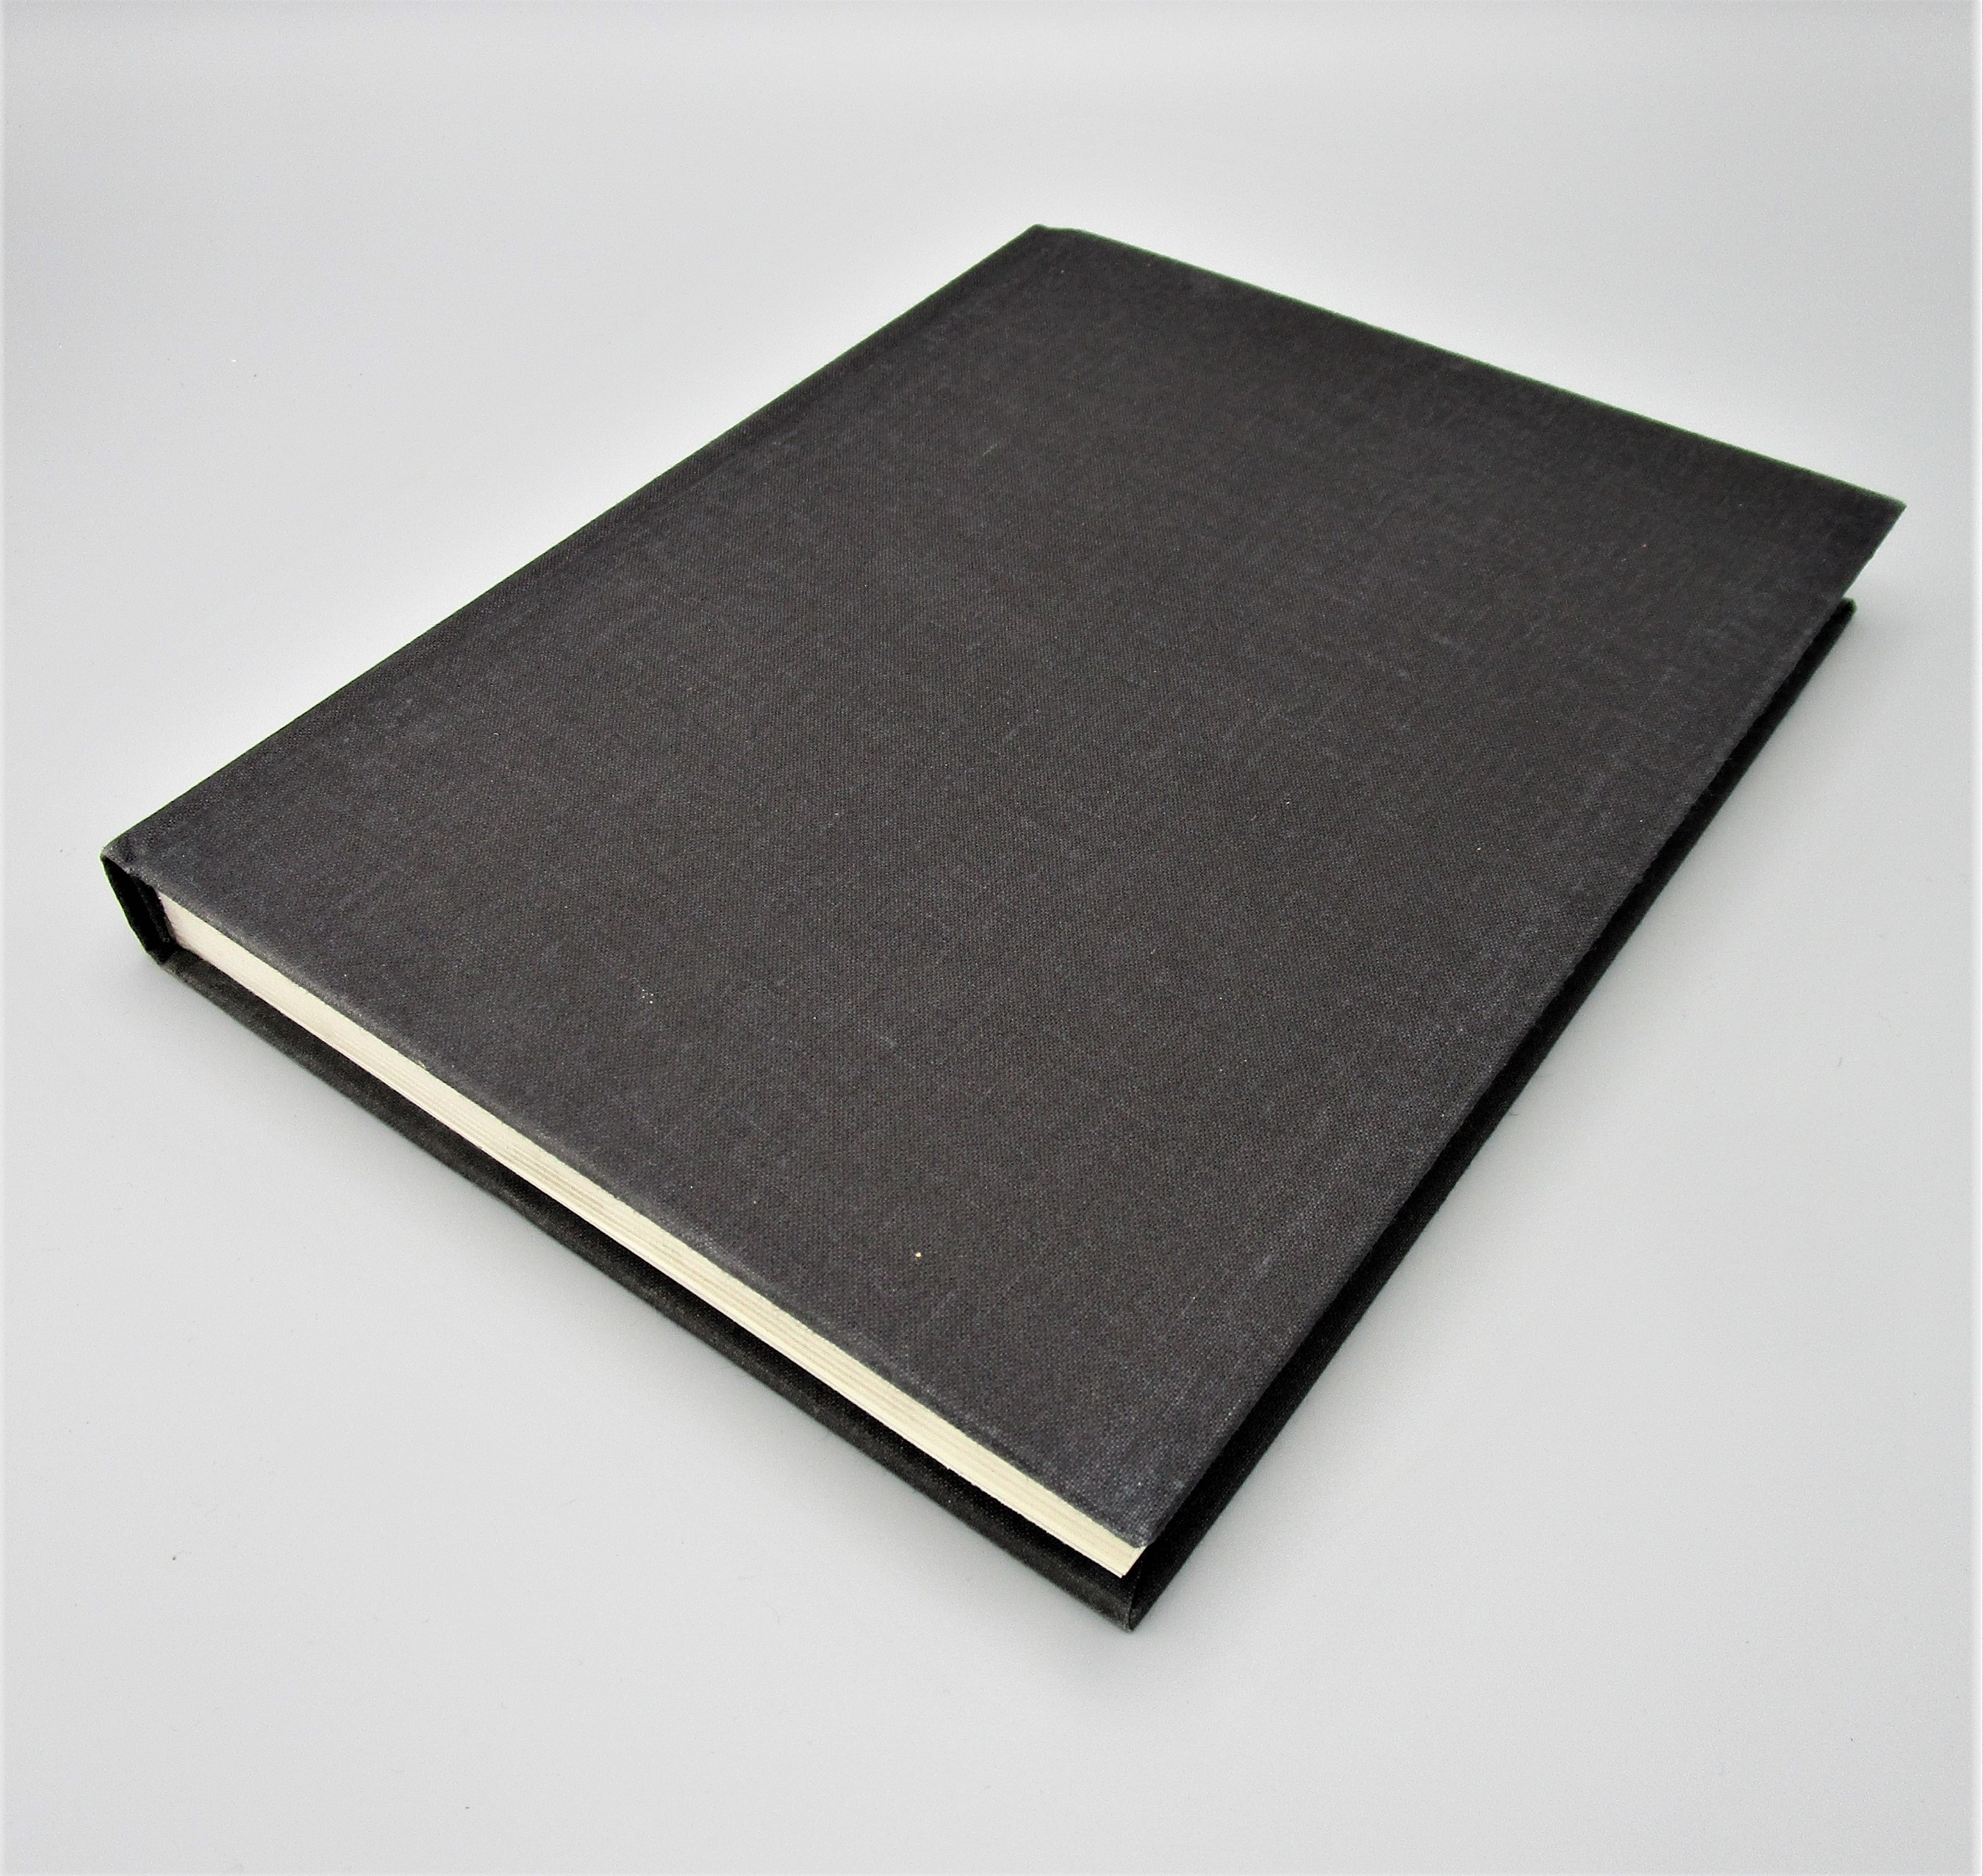 CONTINUOUS PROJECT ALTERED DAILY: THE WRITINGS OF ROBERT MORRIS, by Robert Morris - 1993